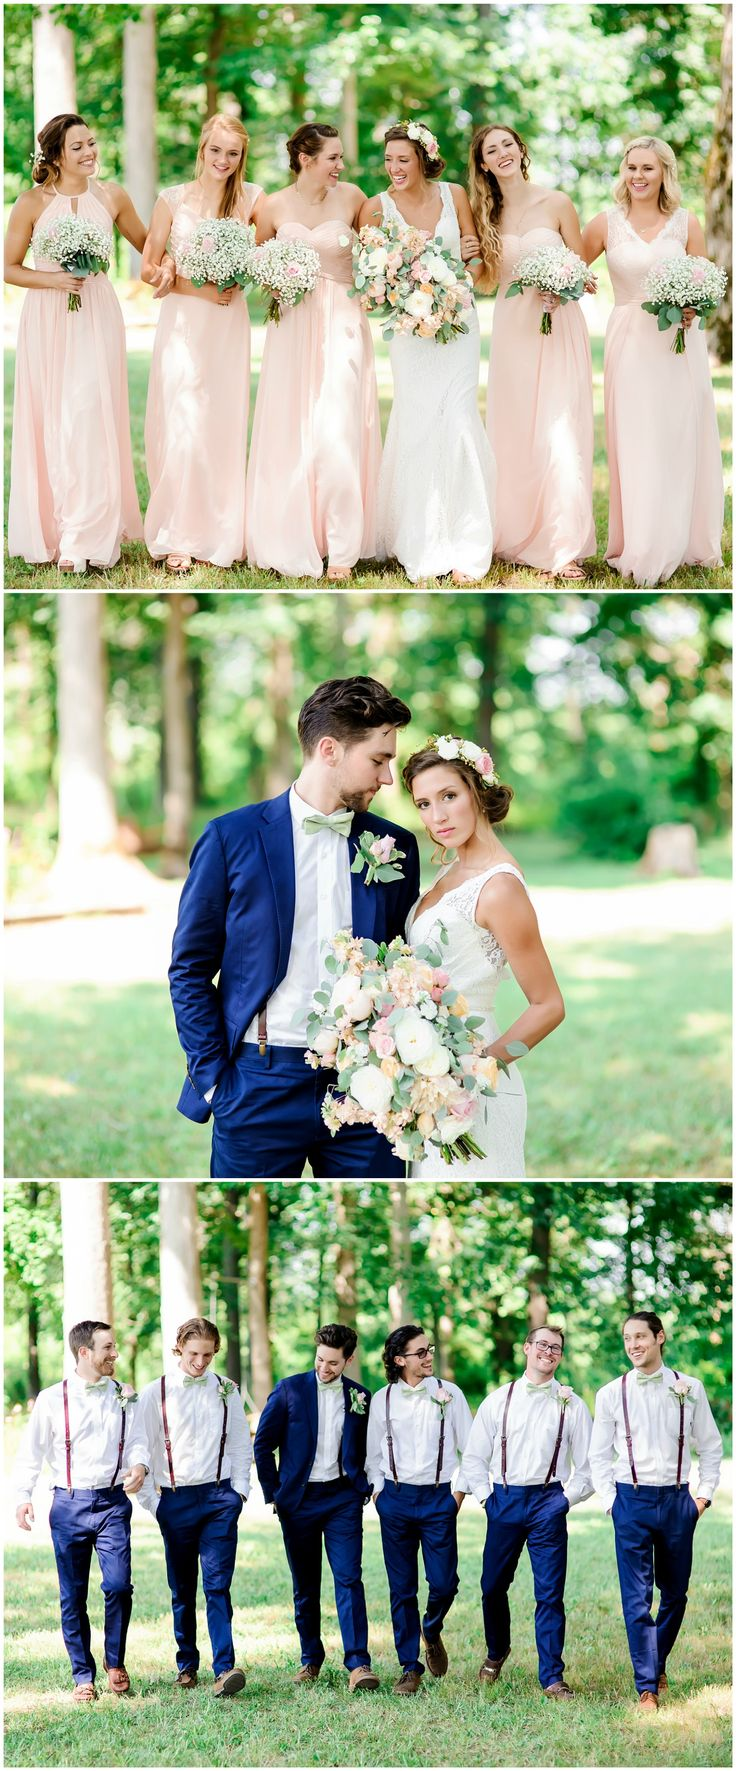 Spring wedding fashion, groomsmen in suspenders, navy blue suit, pastel floral wedding bouquet, baby's breath bouquets, long light pink bridesmaid dresses // Tracy Shoopman Photography